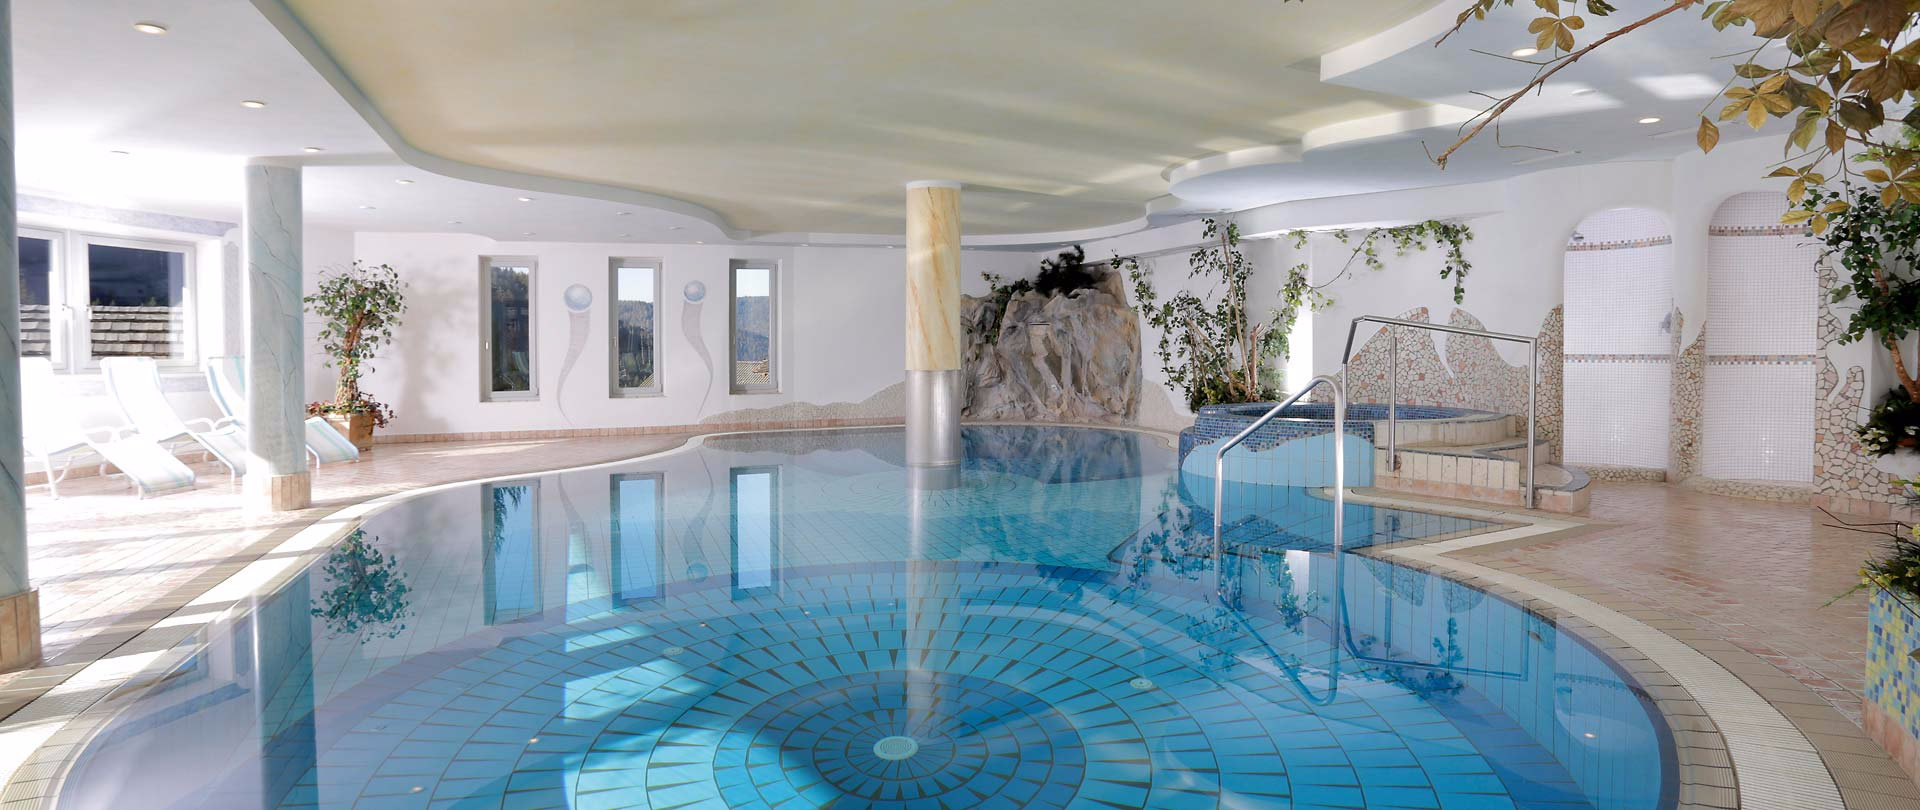 Unser Indoor Pool